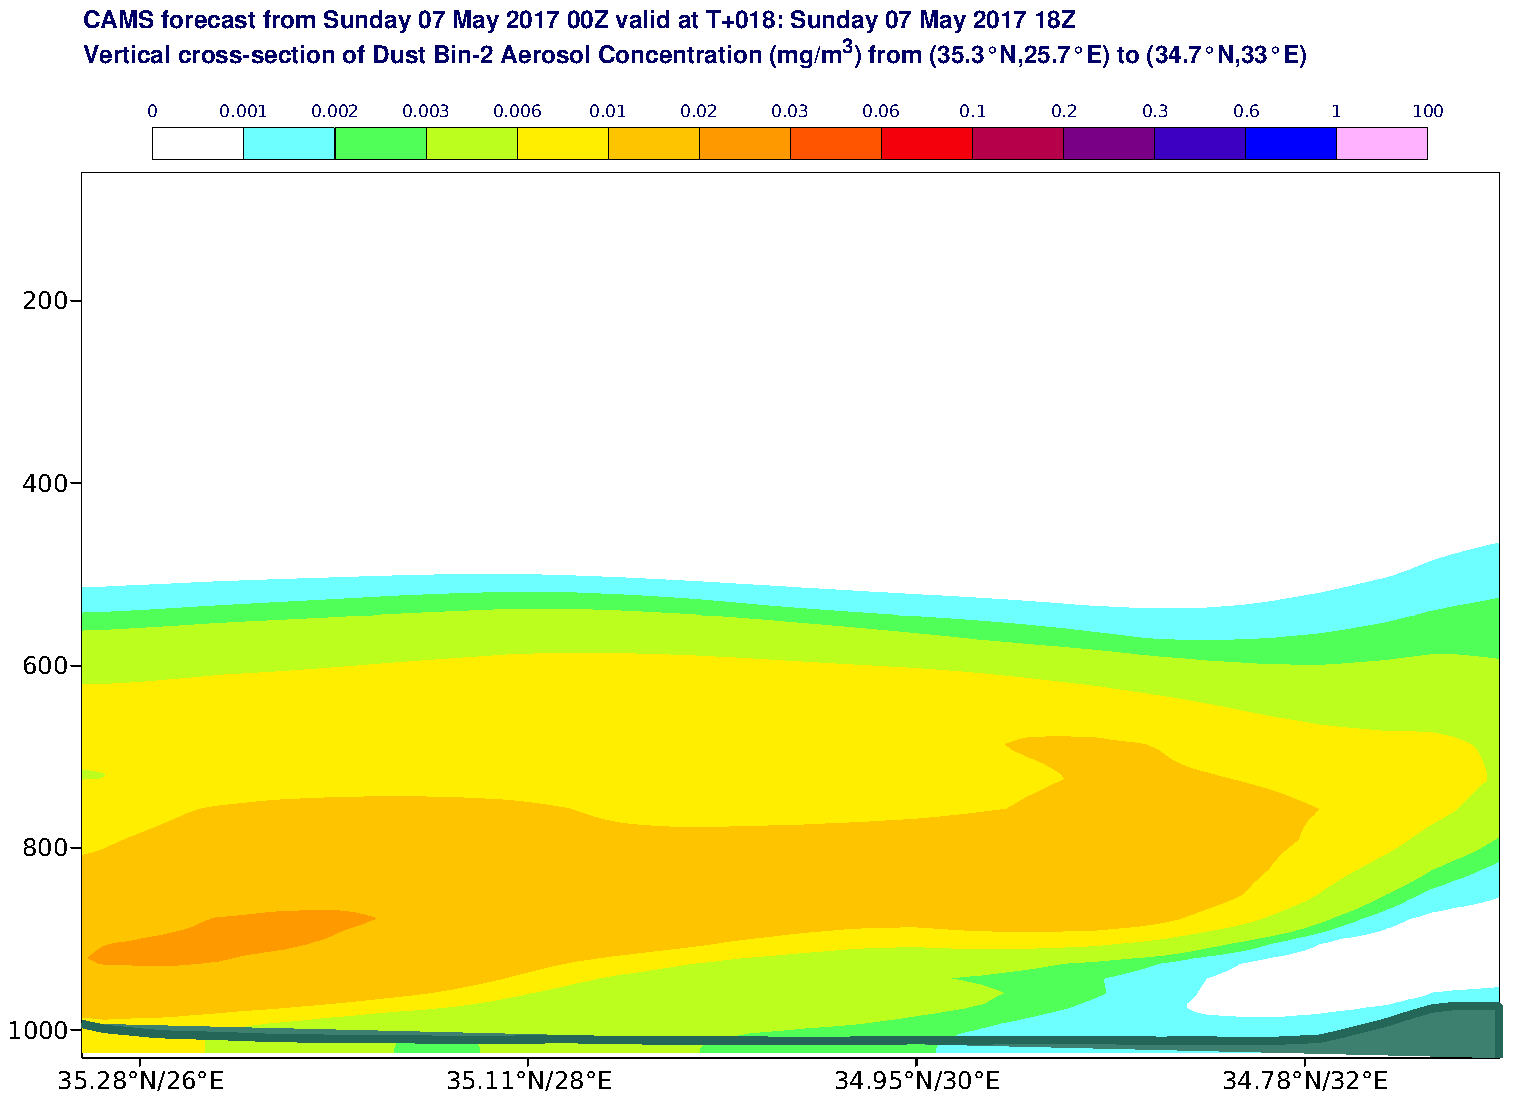 Vertical cross-section of Dust Bin-2 Aerosol Concentration (mg/m3) valid at T18 - 2017-05-07 18:00